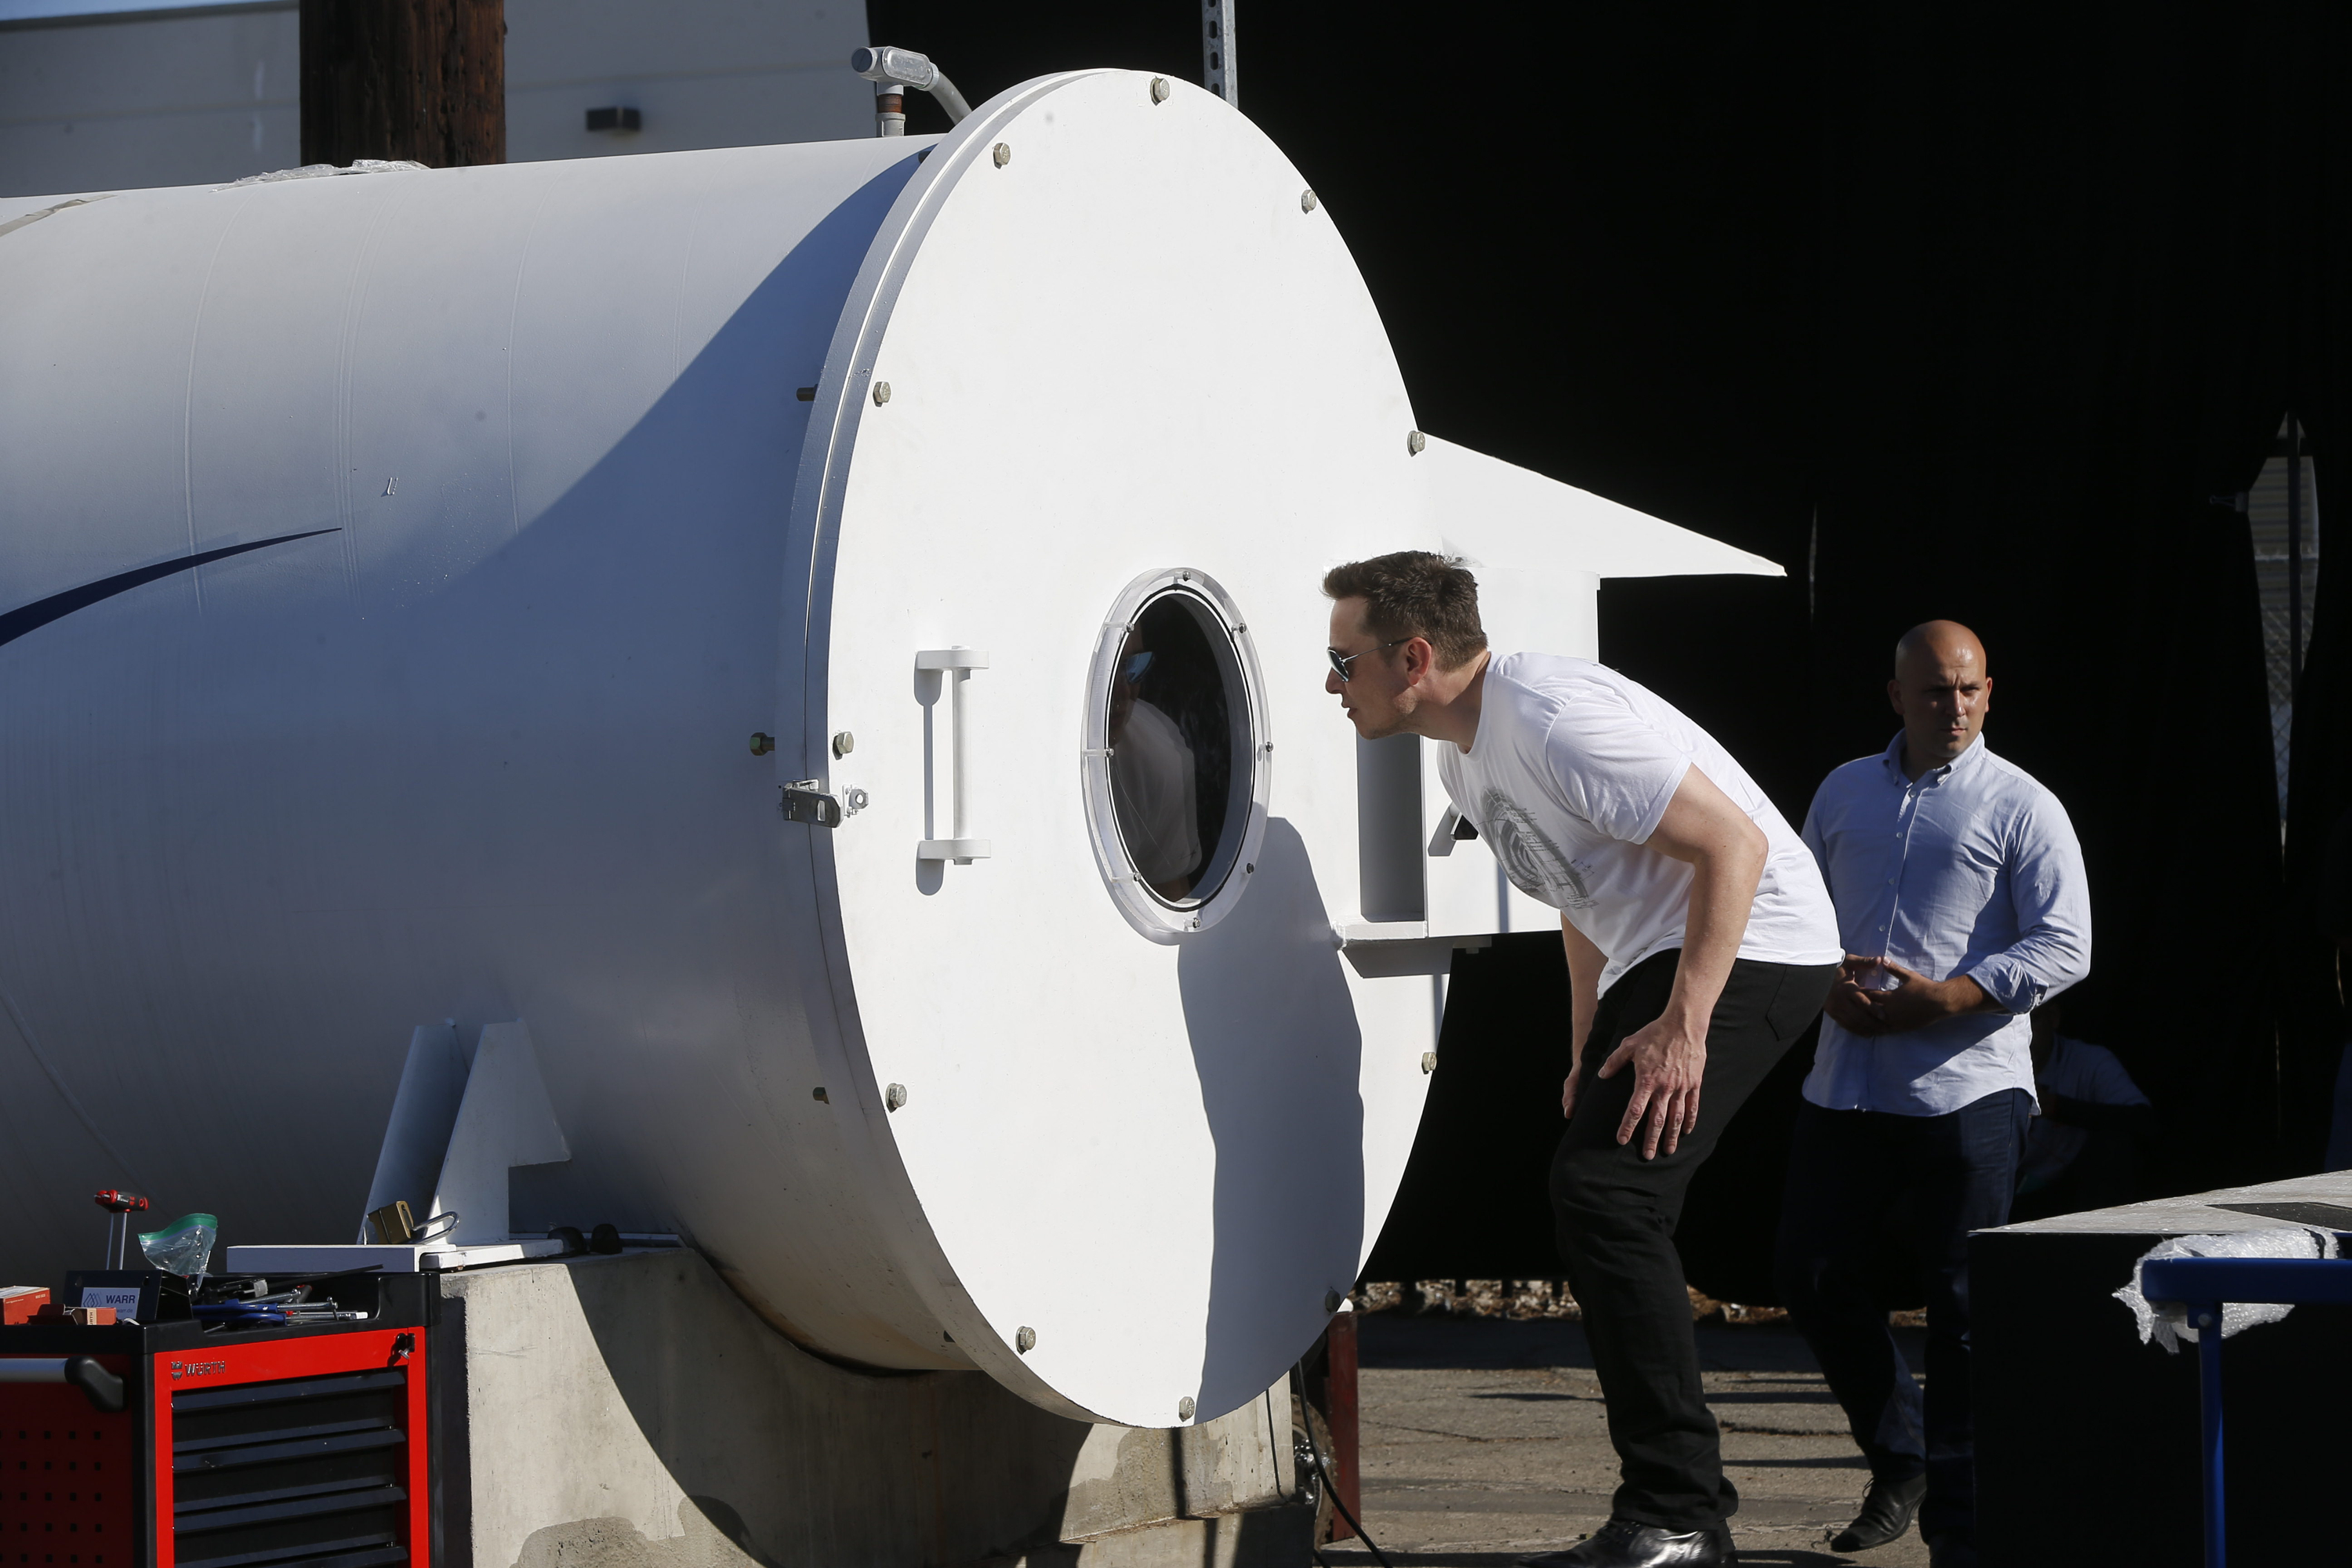 Telsa CEO Elon Musk peaks inside the Hyperloop track door at the Hyperloop Pod Competition II at SpaceX's Hyperloop track in Hawthorne, Calif., Sunday, Aug. 27, 2017. The Hyperloop system built by SpaceX is approximately one mile in length with a six-foot outer diameter. The WARR team from Tech University Munich won the Hyperloop Pod Competition II with a peak speed of 324 kilometers per hour (201 mph). (AP Photo/Damian Dovarganes)